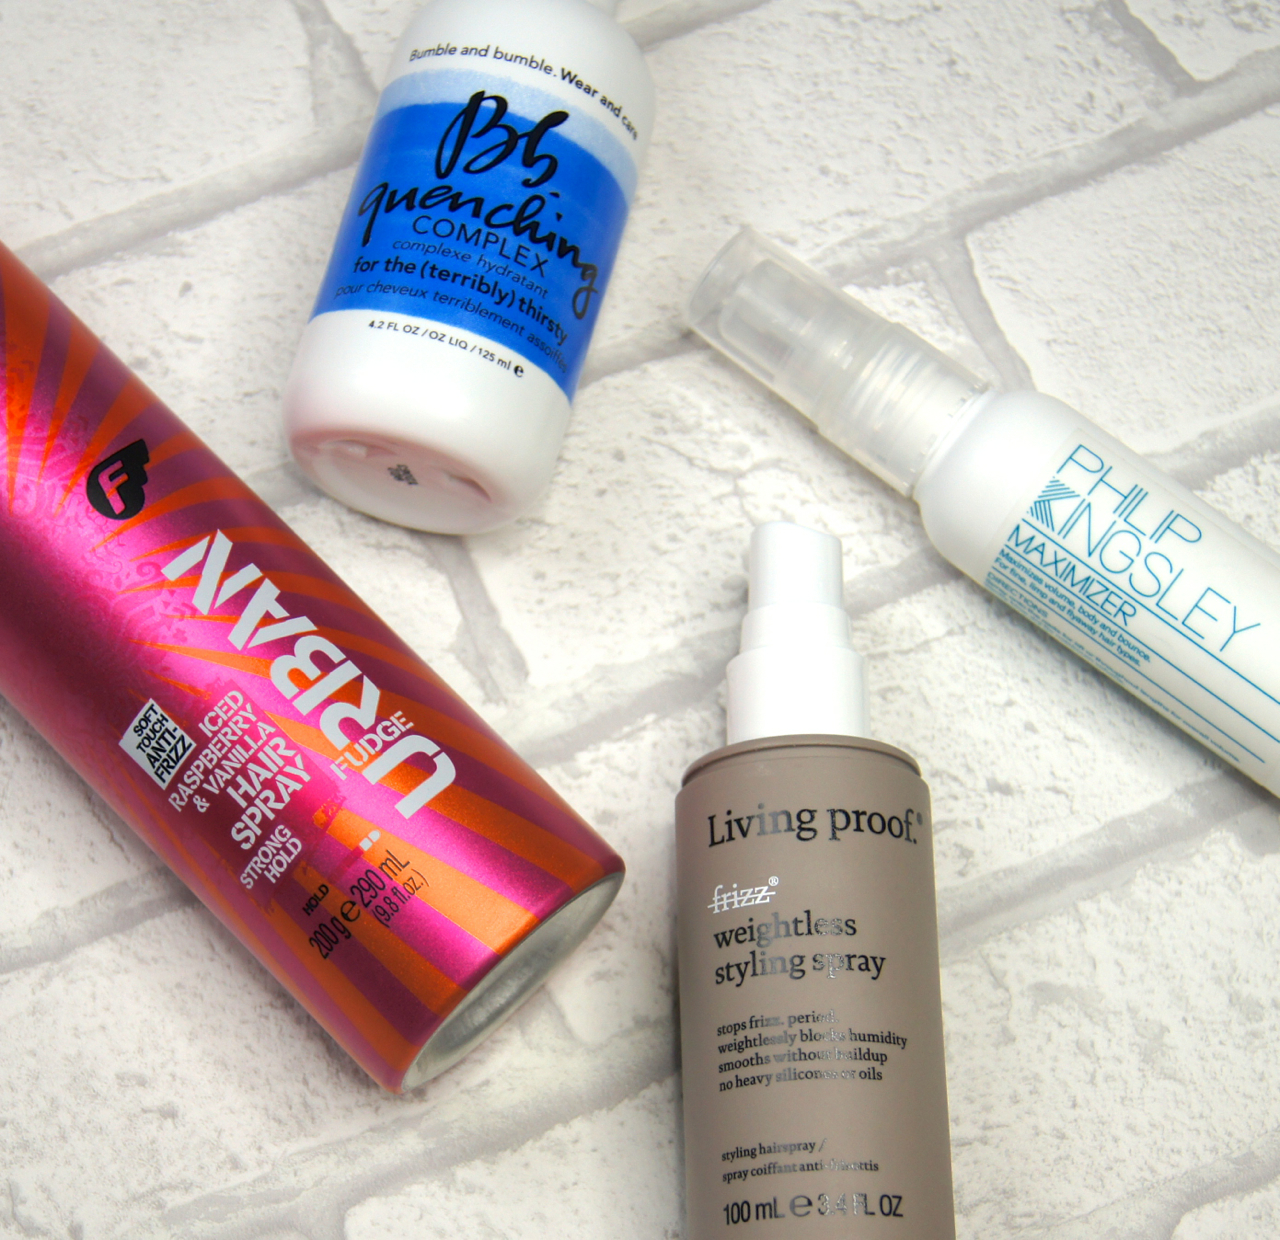 haircare favourites 2015 bumble and bumble quenching complex living proof no frizz styling spray philip kingsley maximiser fudge raspberry vanilla review